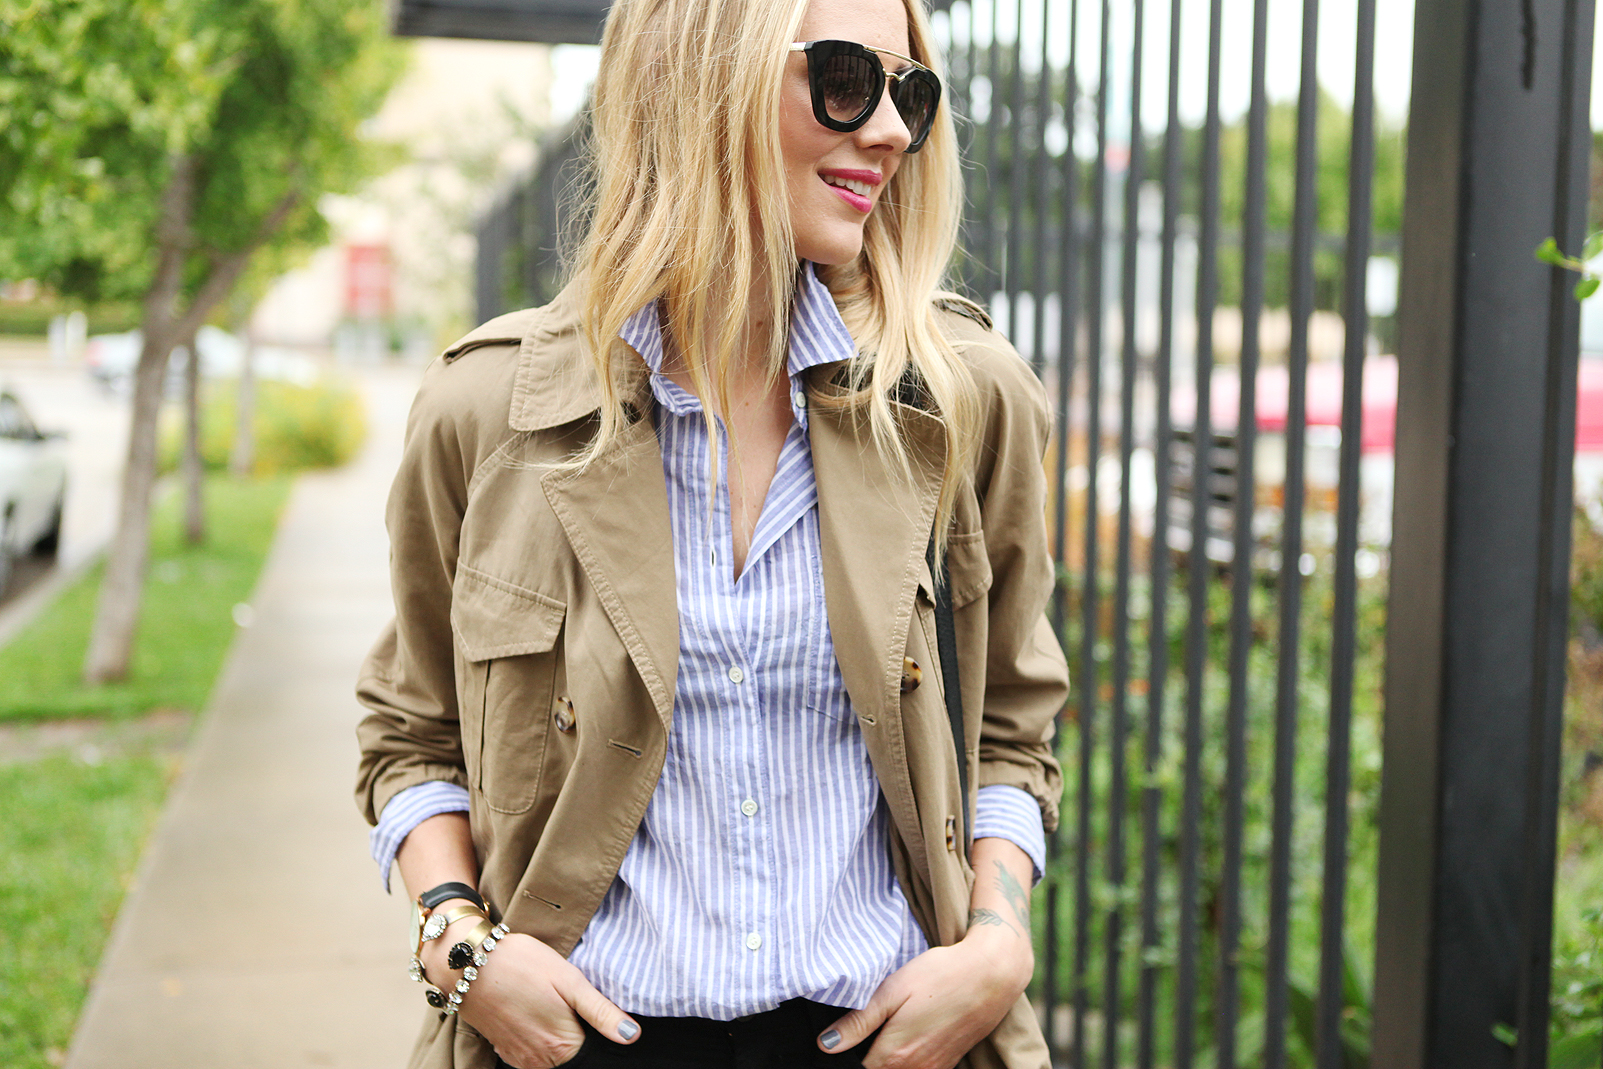 fashion-jackson-blue-white-stripe-shirt-cargo-swing-trench-prada-retro-sunglasses